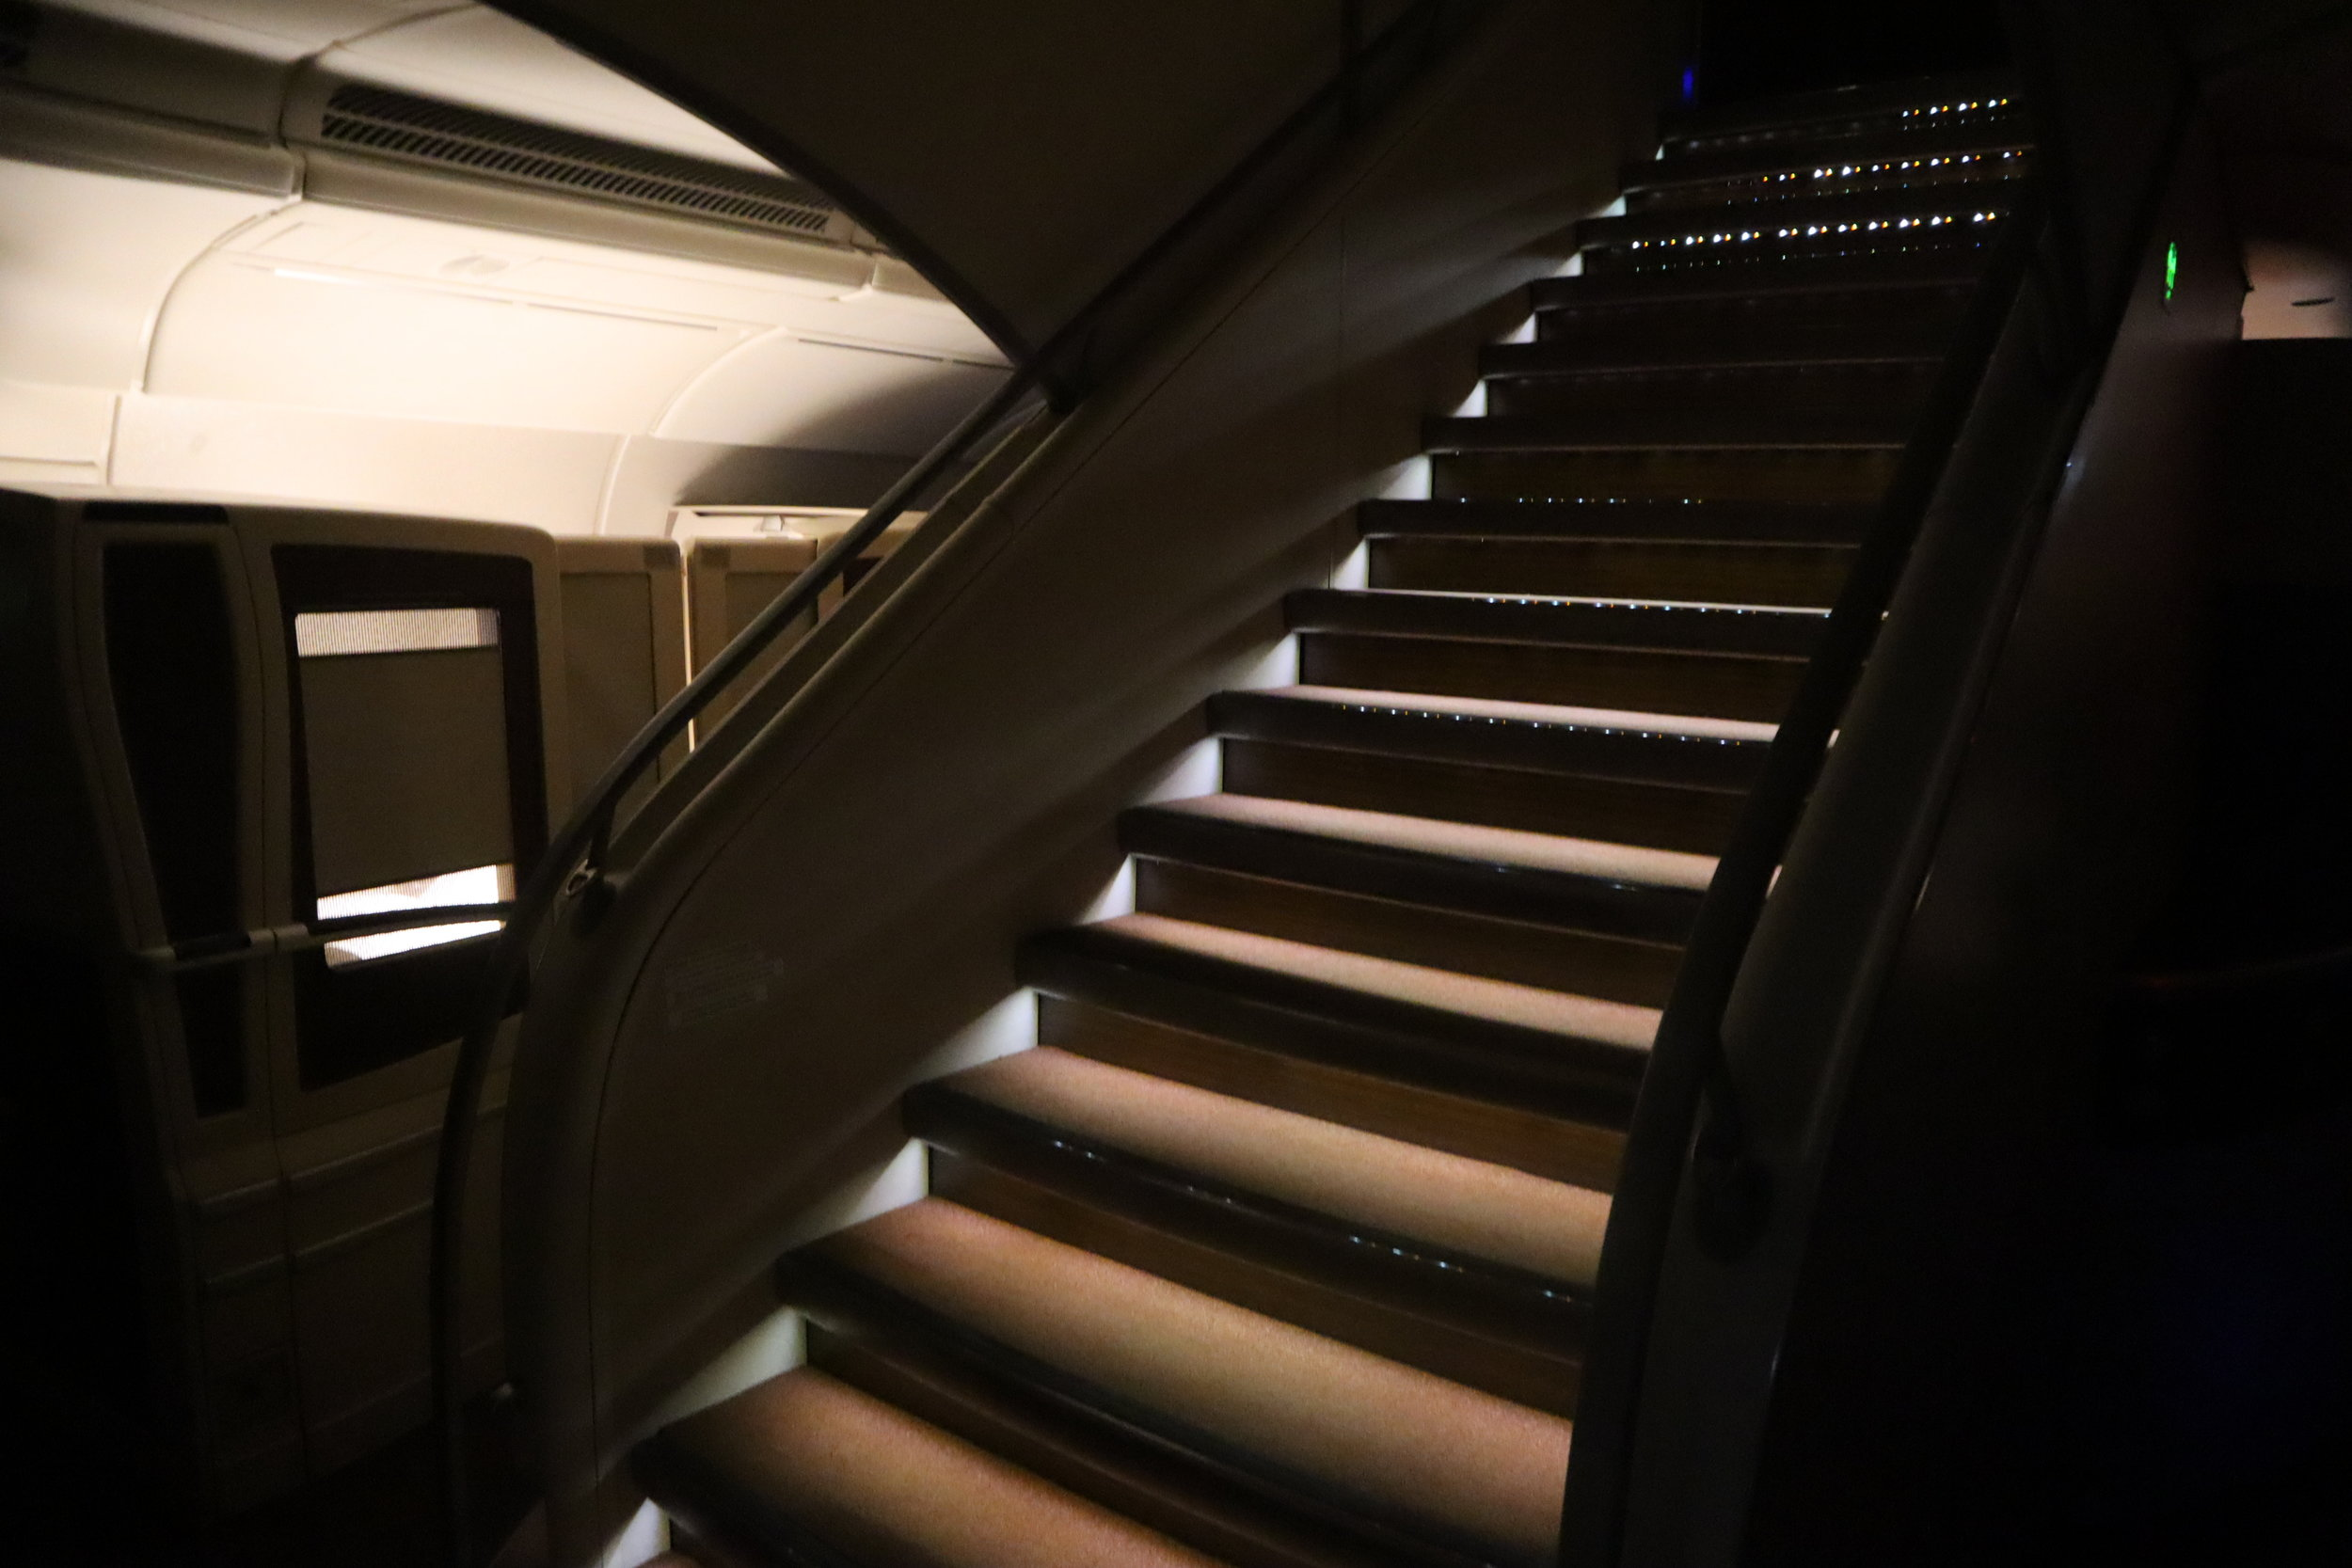 Singapore Airlines Suites Class – Airbus A380 staircase